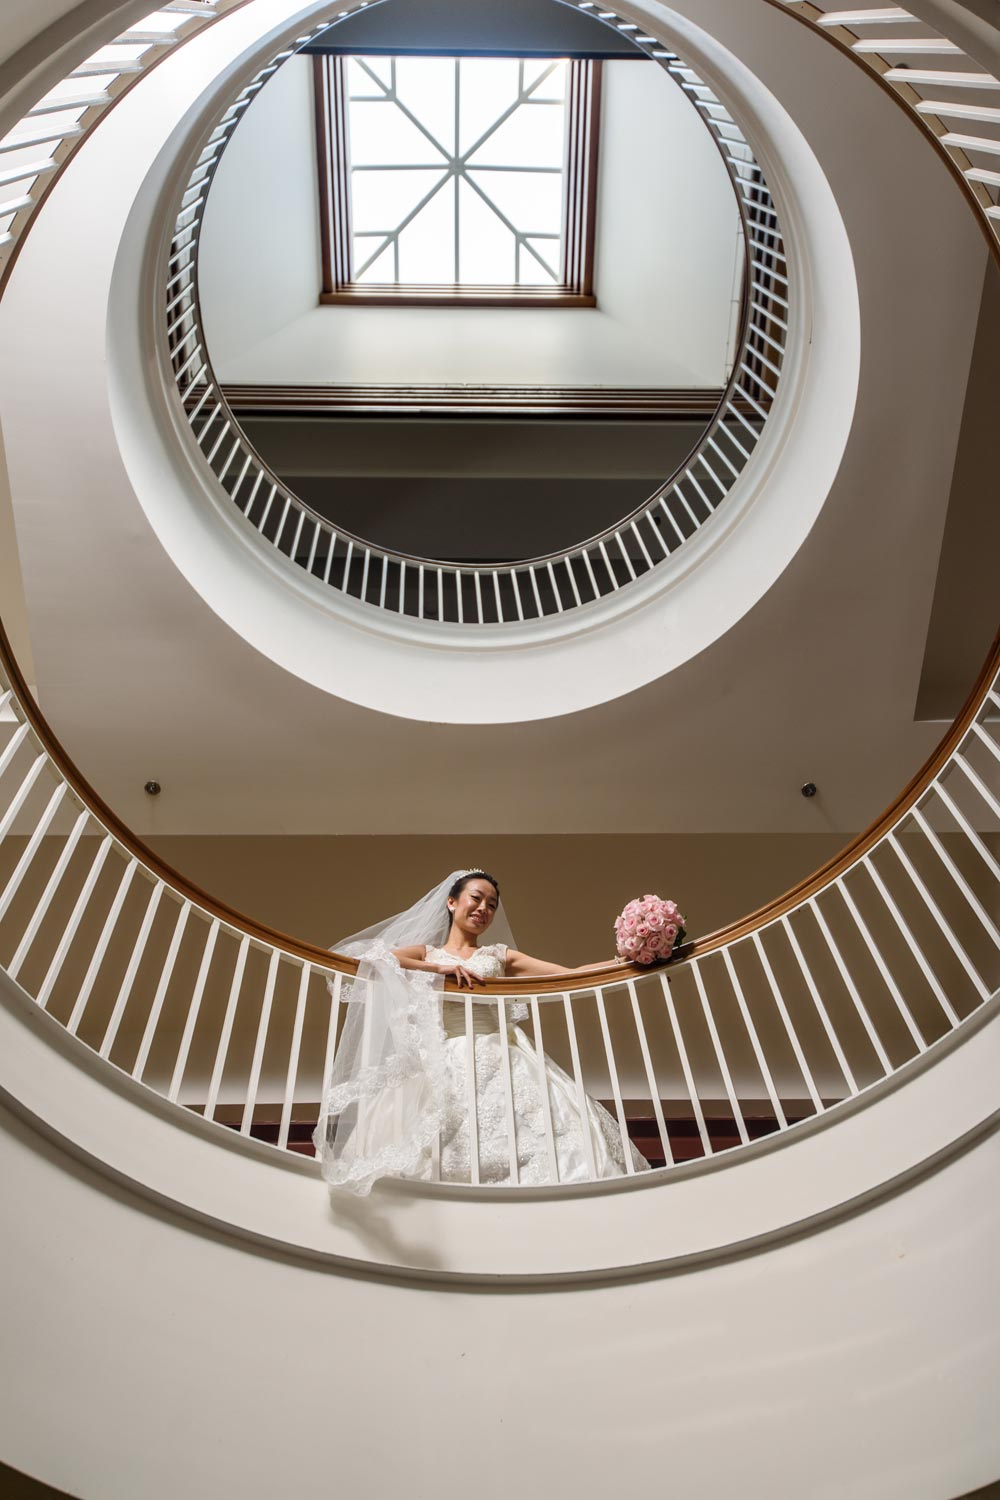 wedding-photographer-scott-walz-studio-walz238.jpg